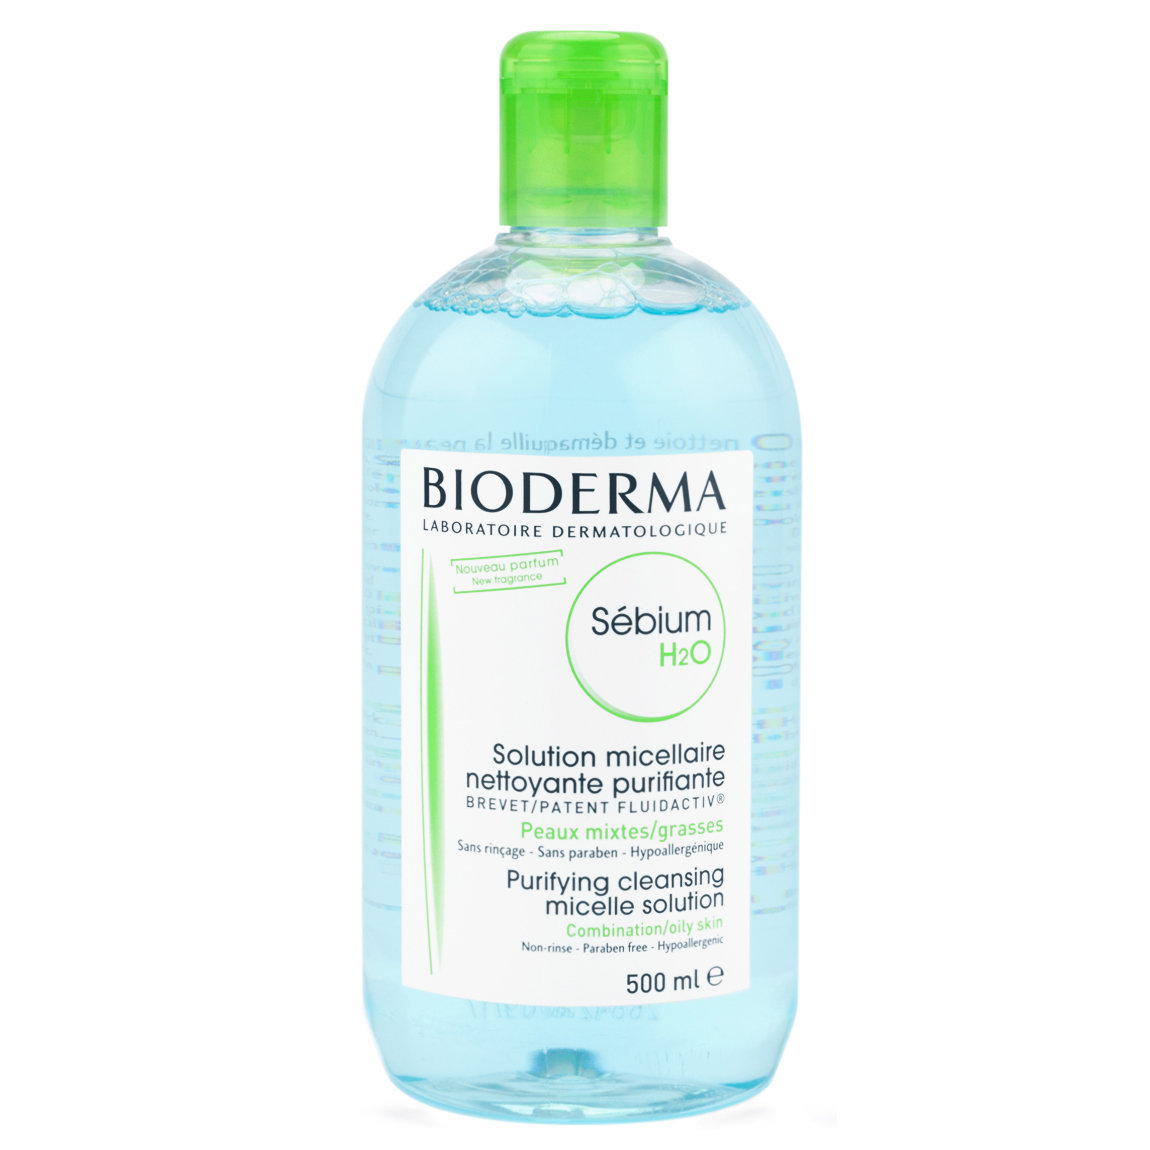 Bioderma Sébium H2O 500 ml product smear.